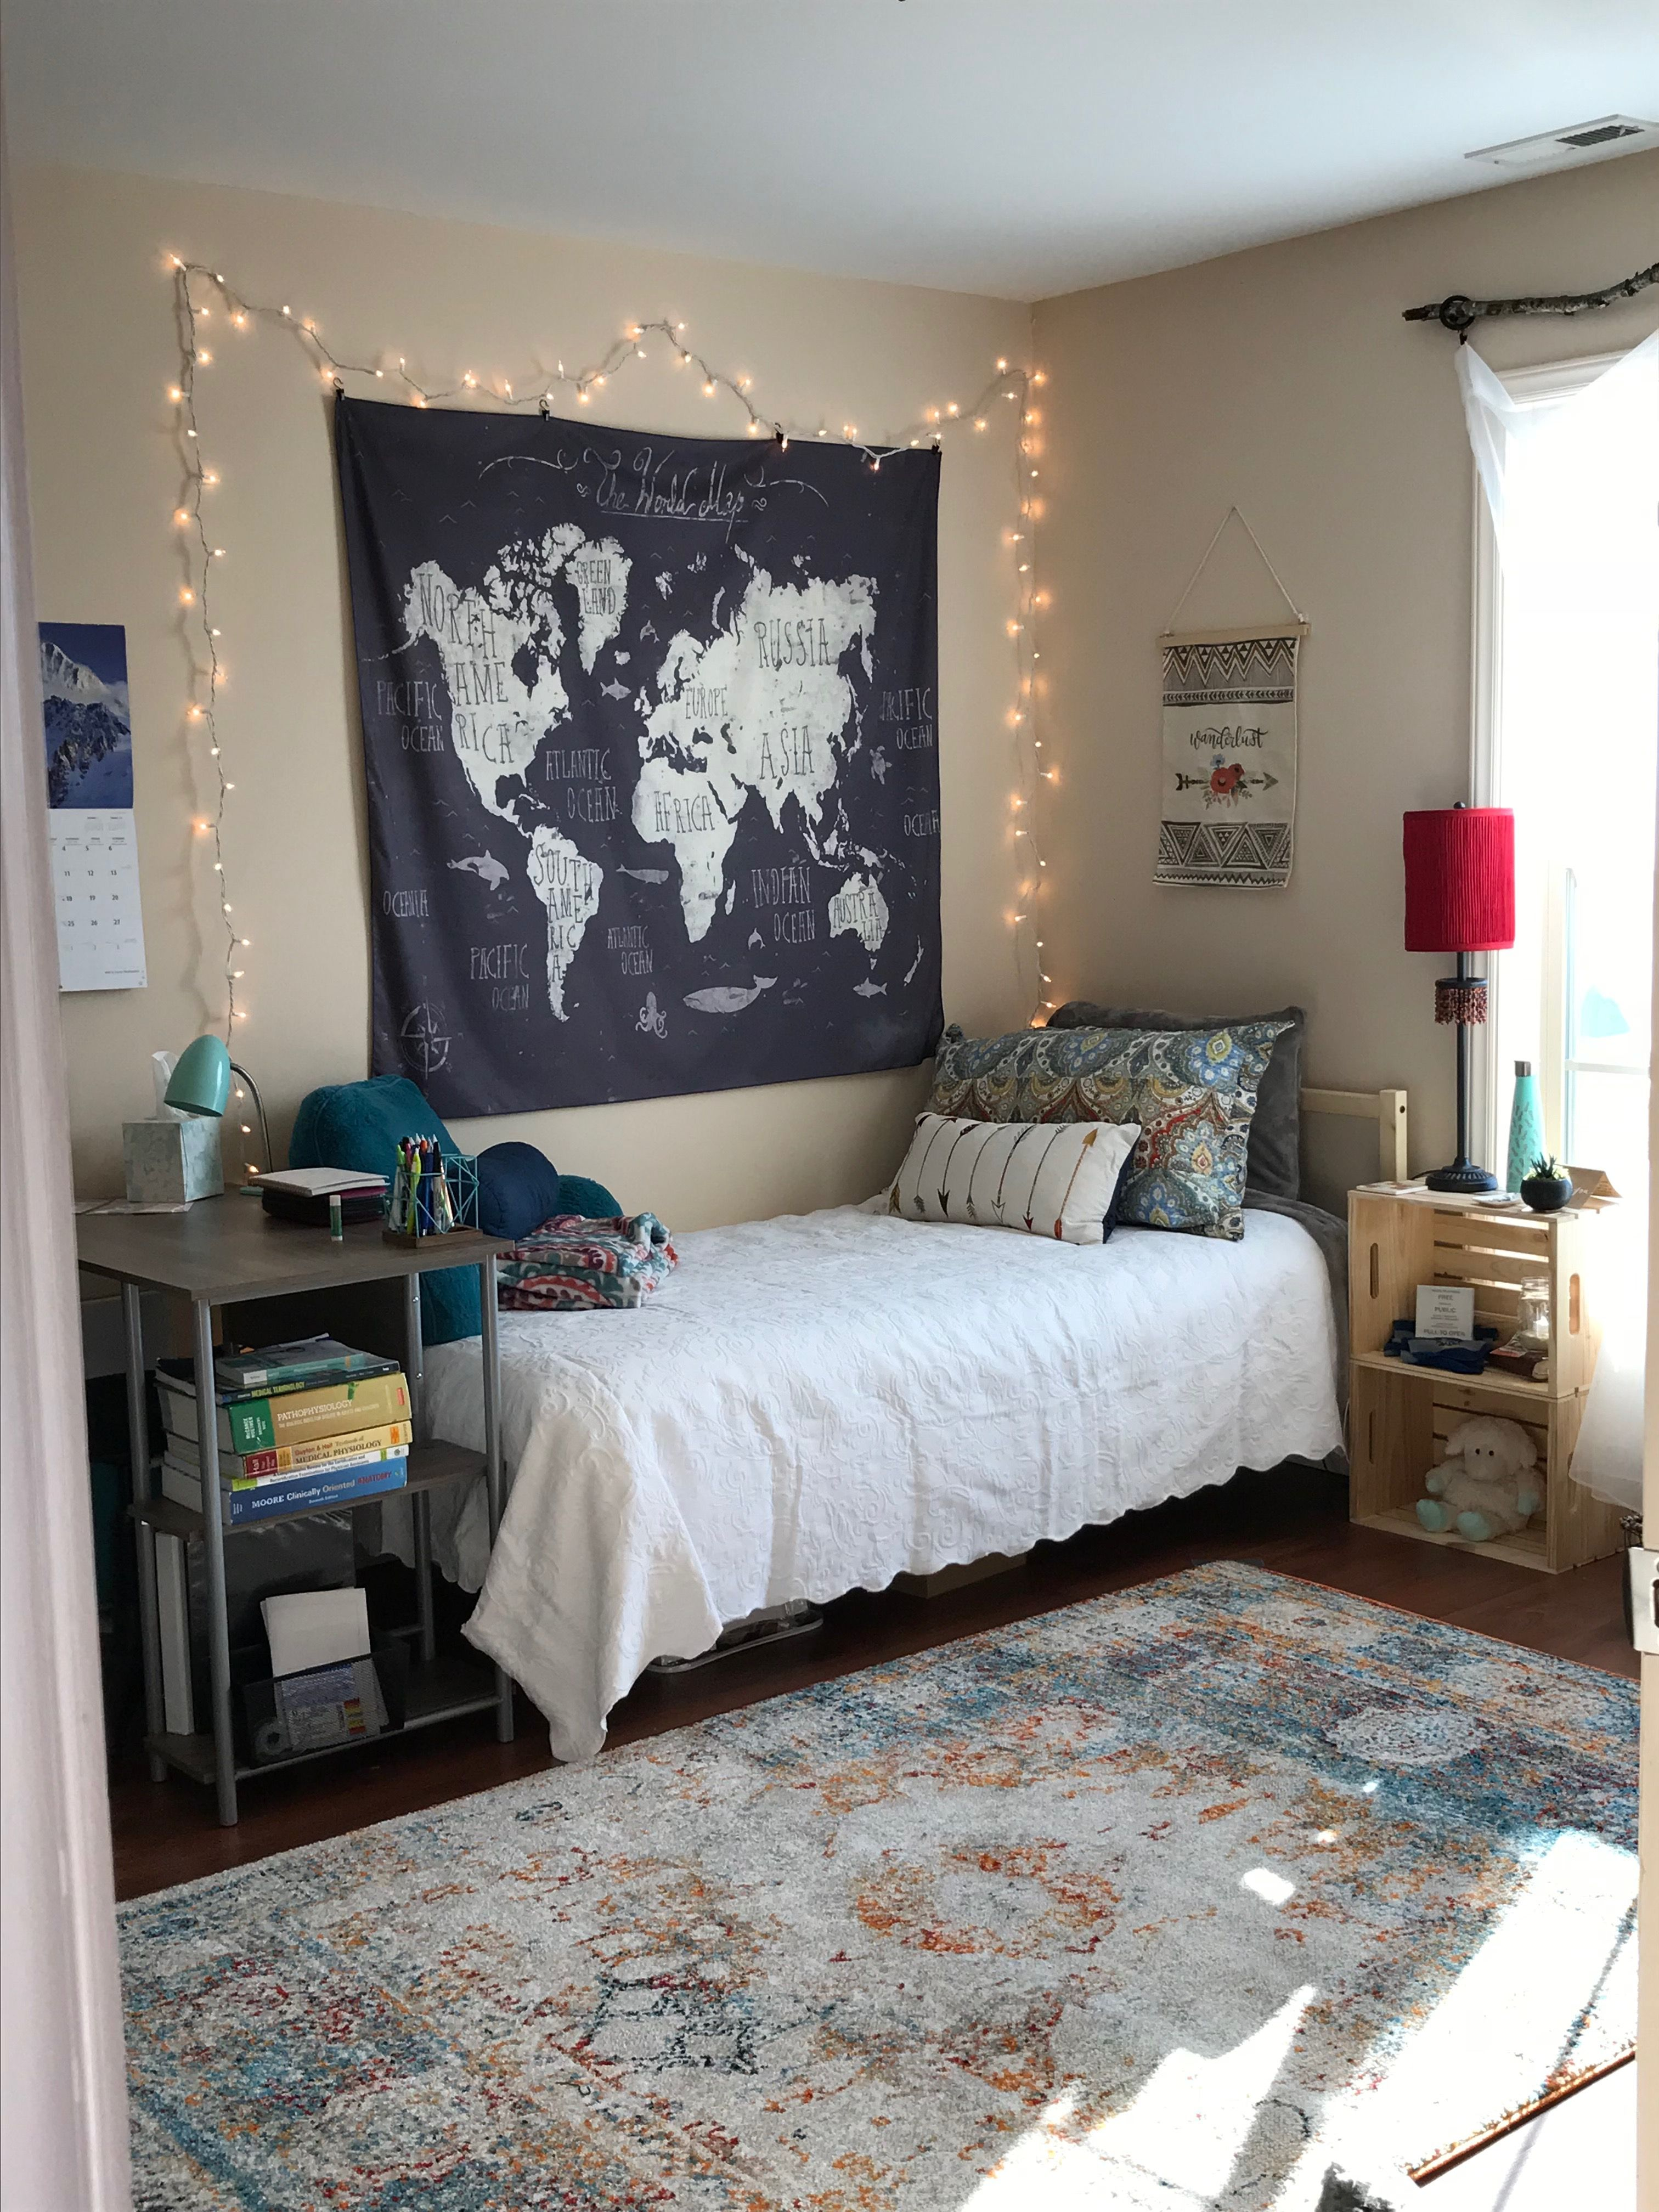 Tiny Bedroom Decor: What Perfection Looks Like ️